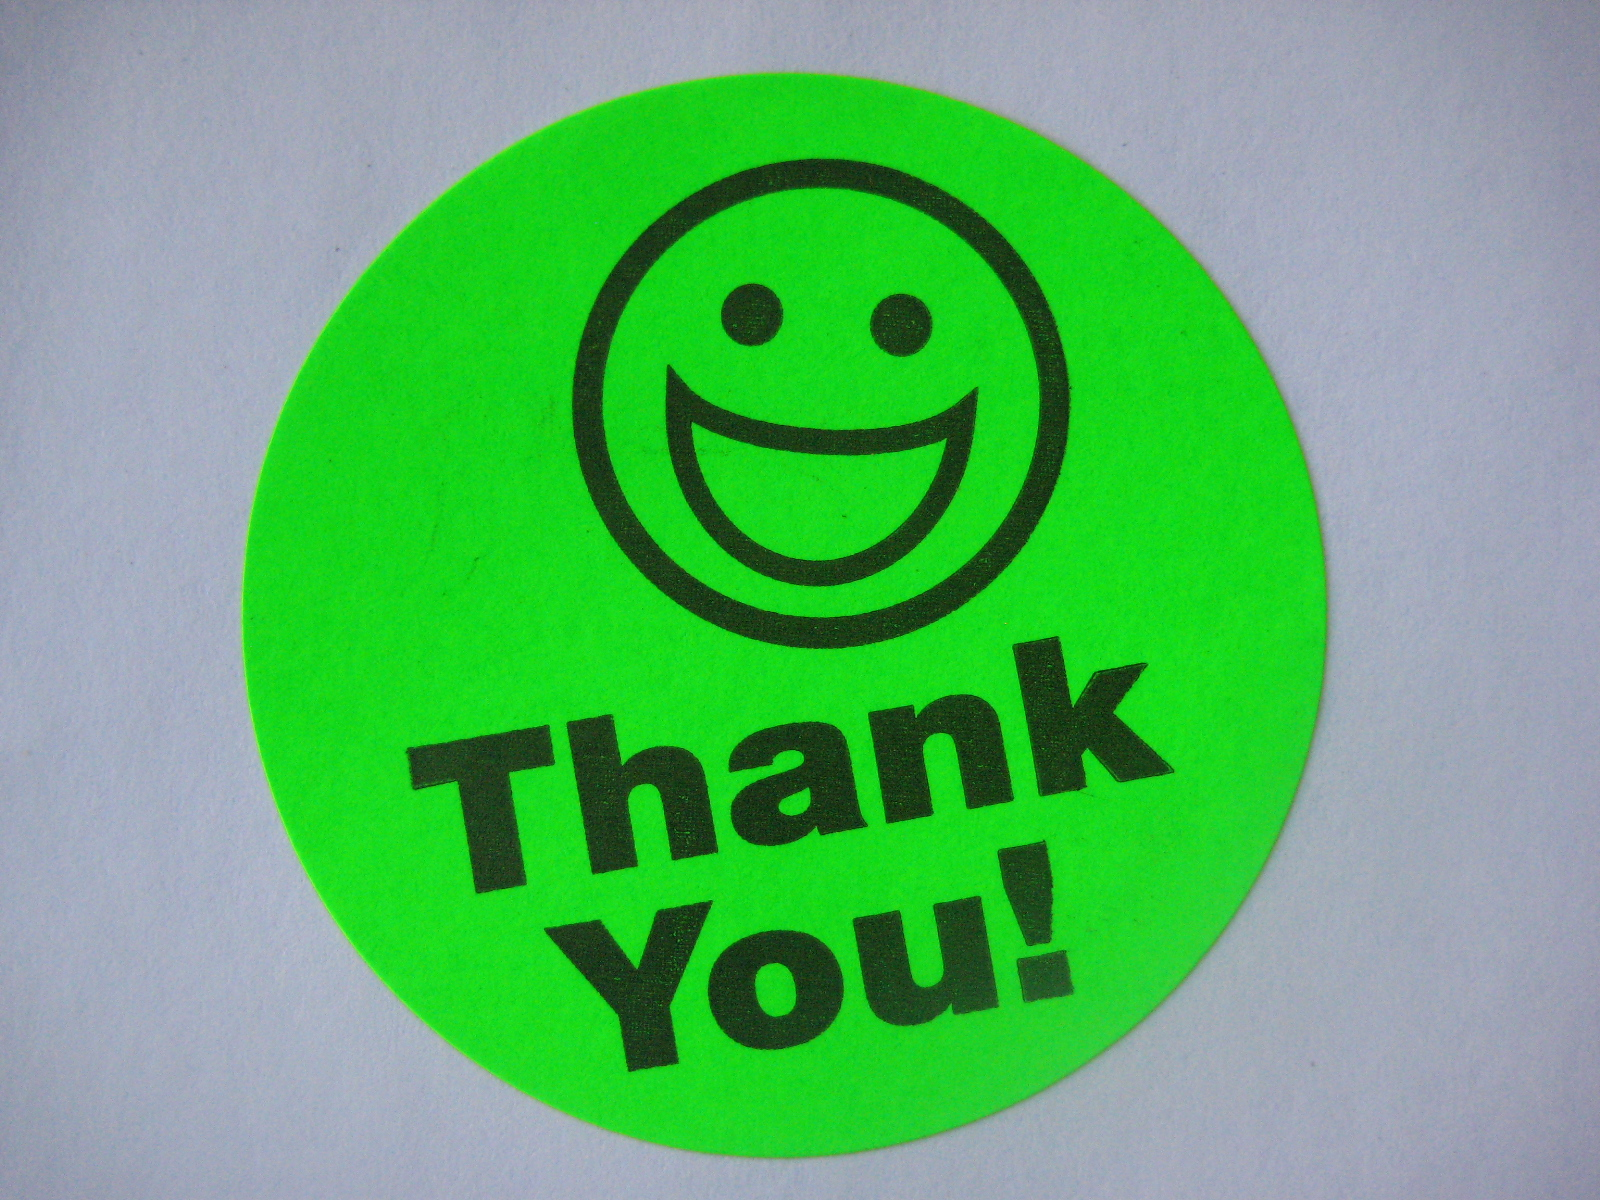 Usps Return Label >> 250 BIG THANK YOU SMILEY LABEL STICKERS green | eBay